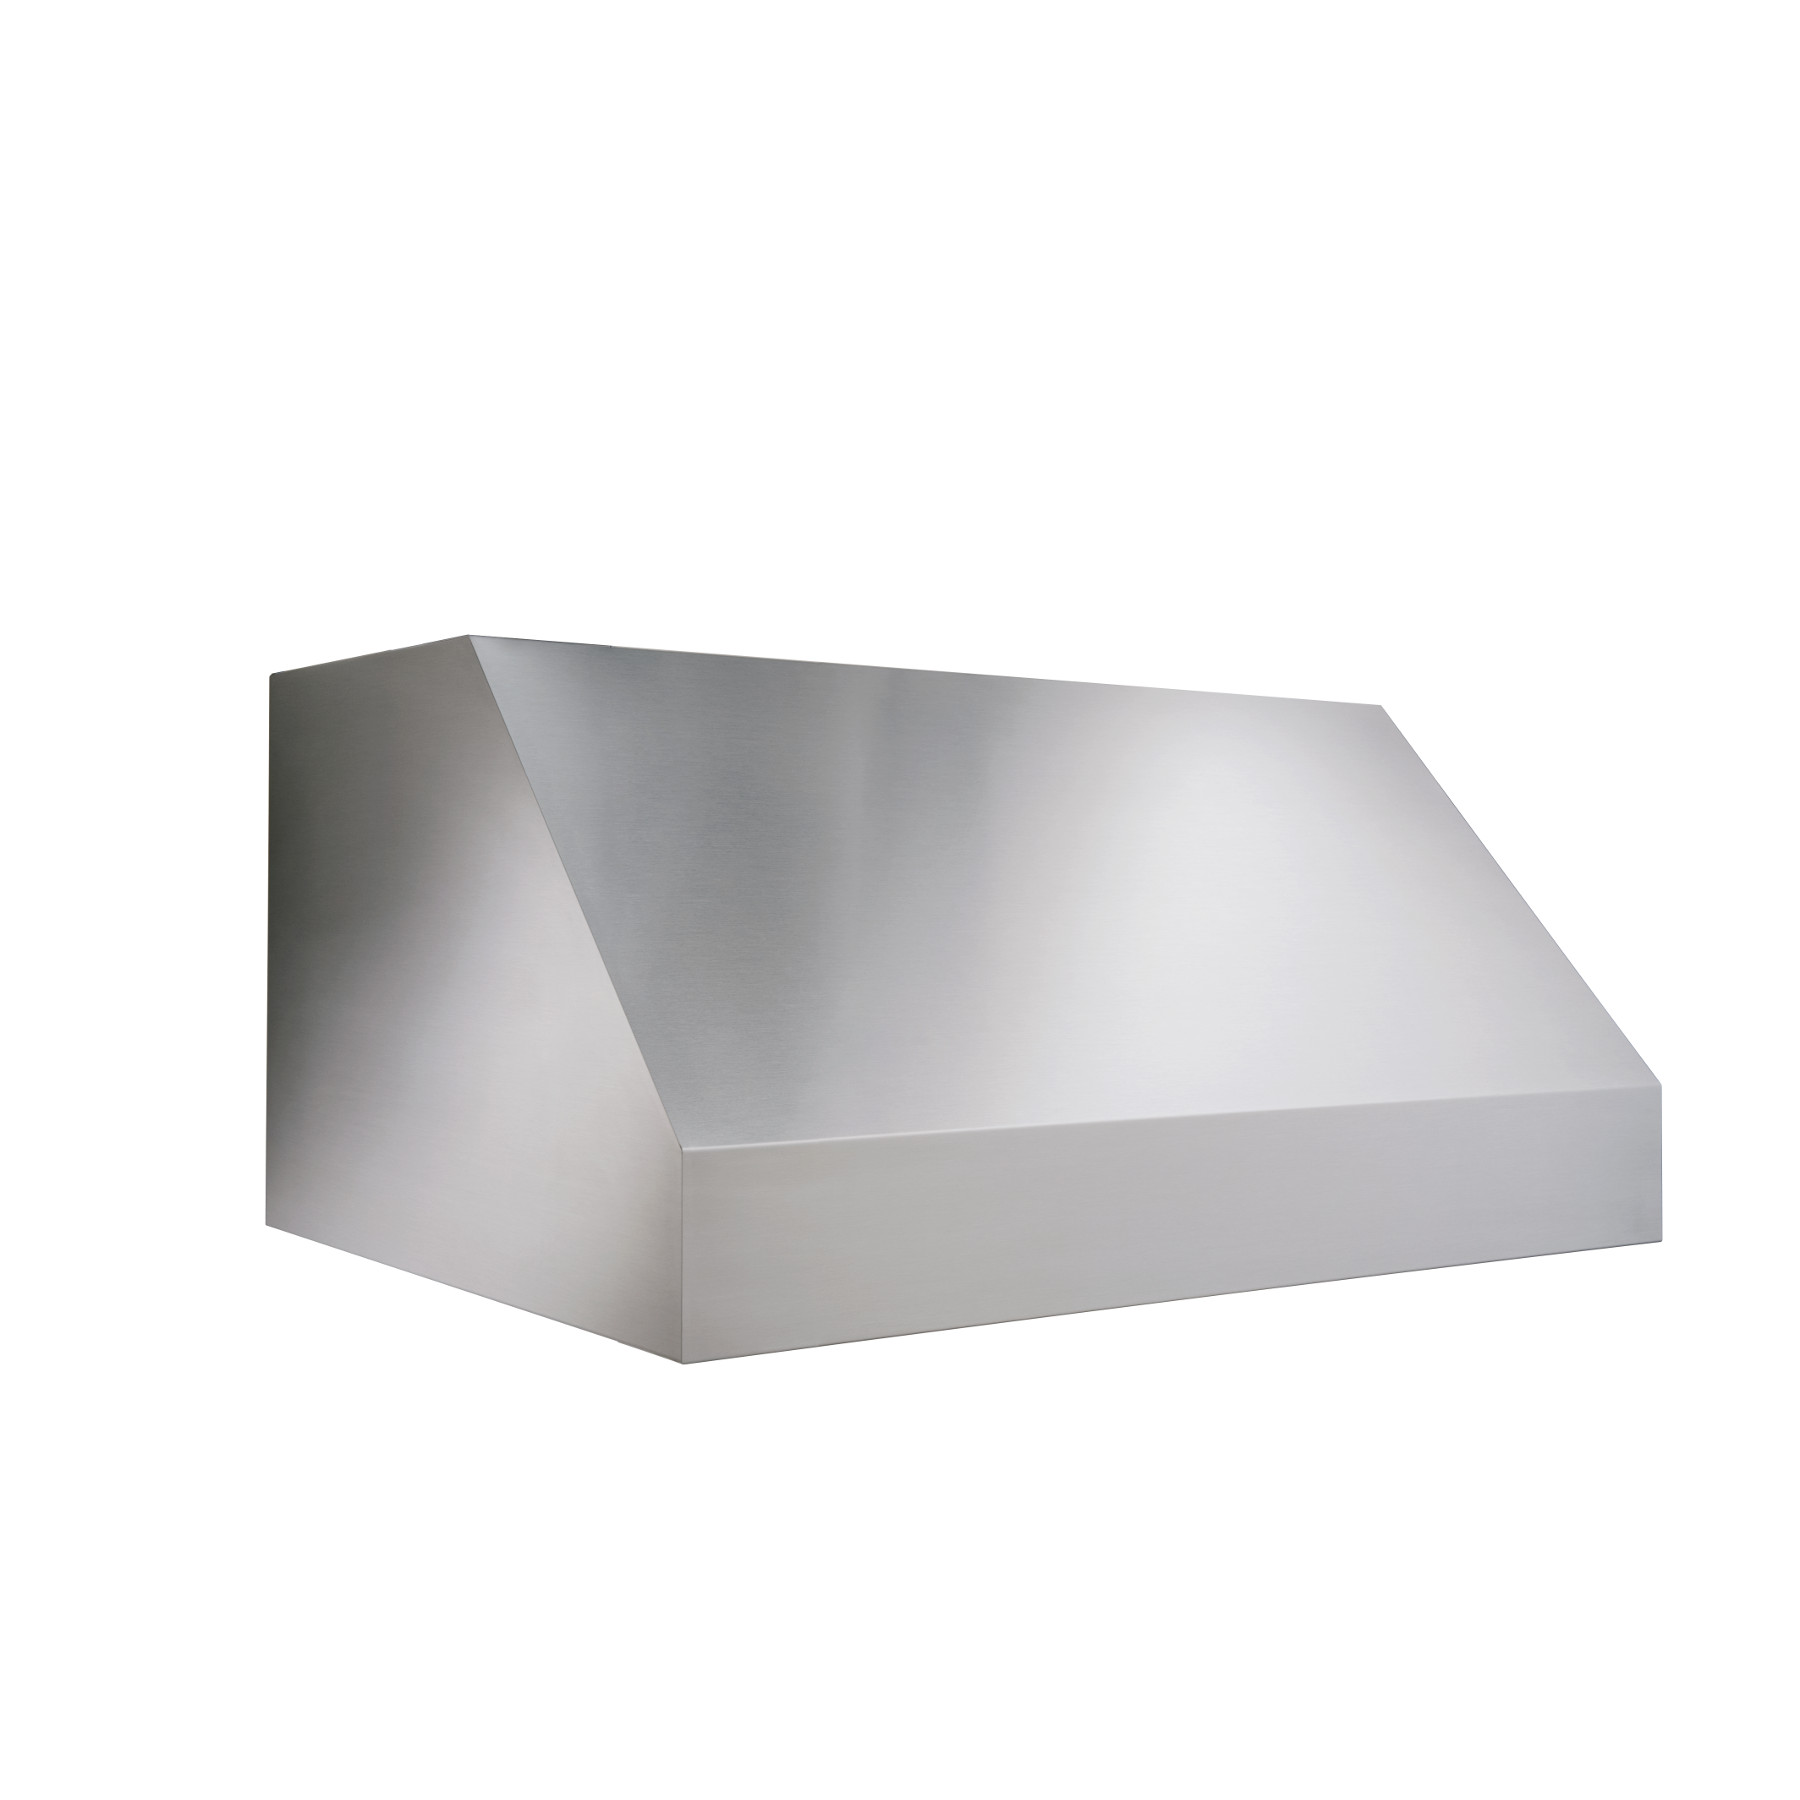 Broan® EPD61 Series 36-inch Pro-Style Outdoor Range Hood, 1290 Max Blower CFM, Stainless Steel